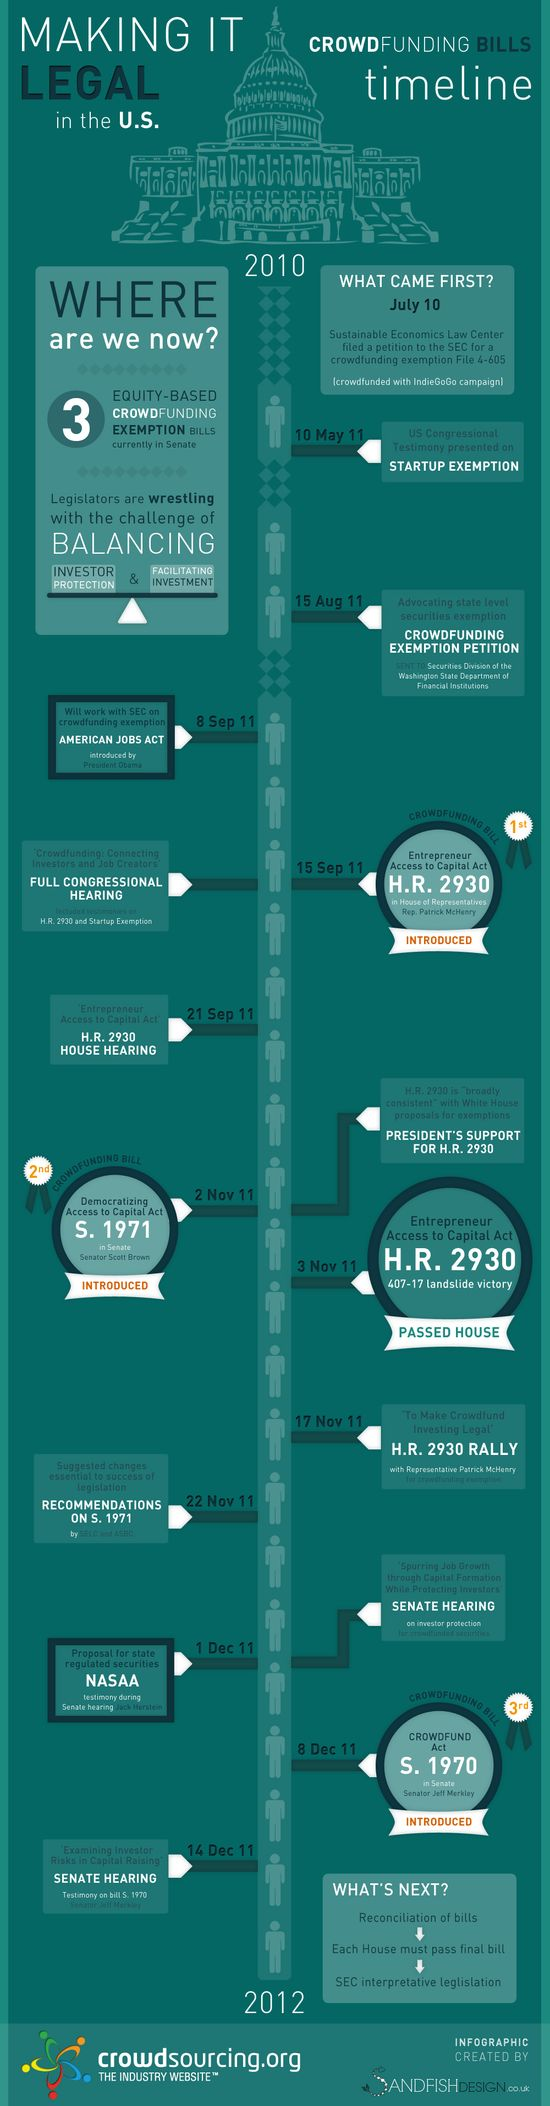 Making It Legal in the U.S. - Crowdfunding Bills Timeline - Sandfish Design